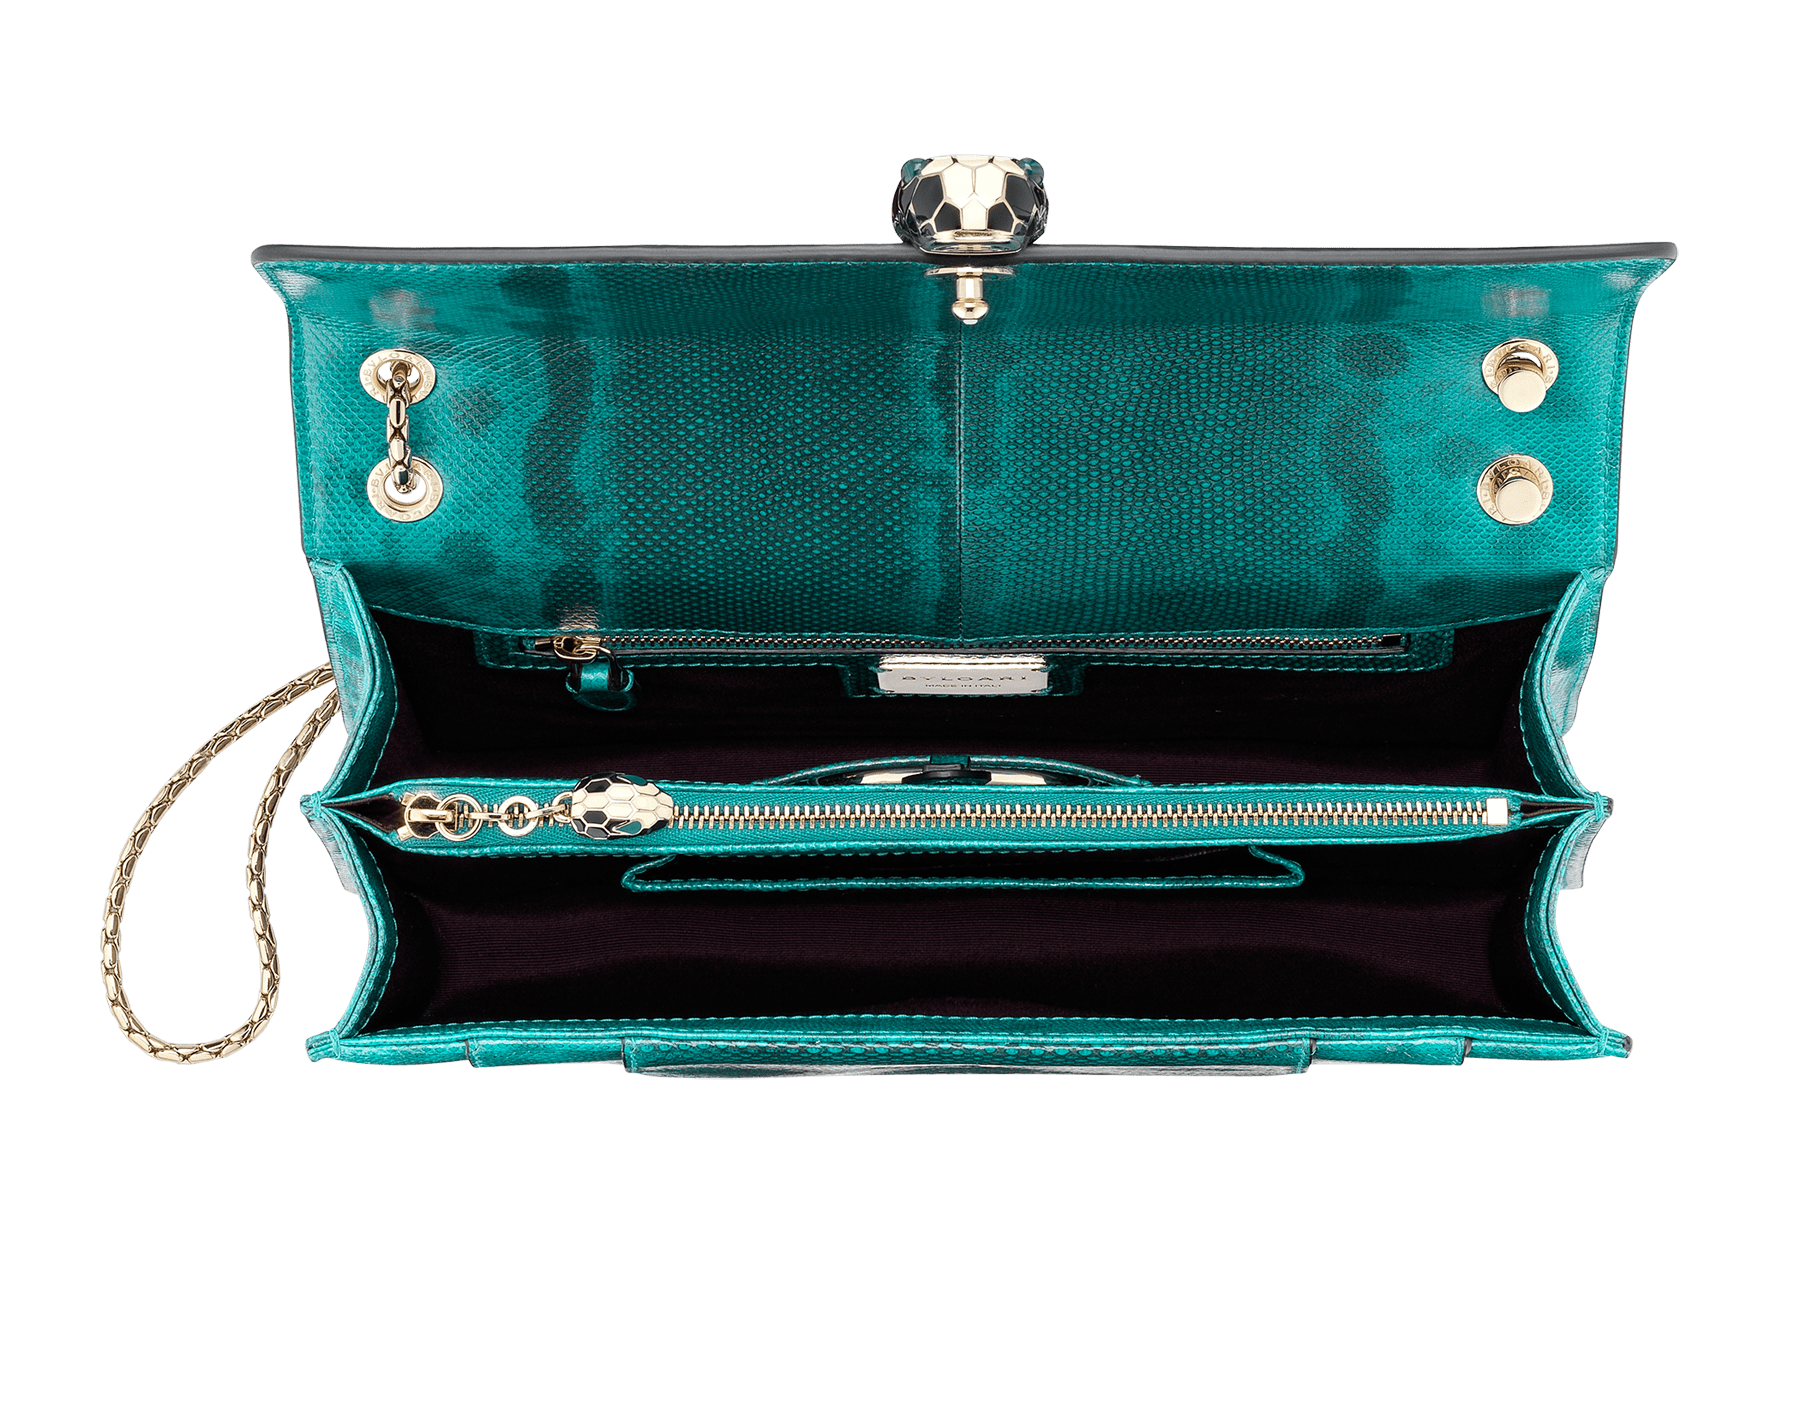 Serpenti Forever shoulder bag in tropical turquoise shiny karung skin. Snakehead closure in light gold plated brass decorated with black and white enamel, and green malachite eyes. 287917 image 4